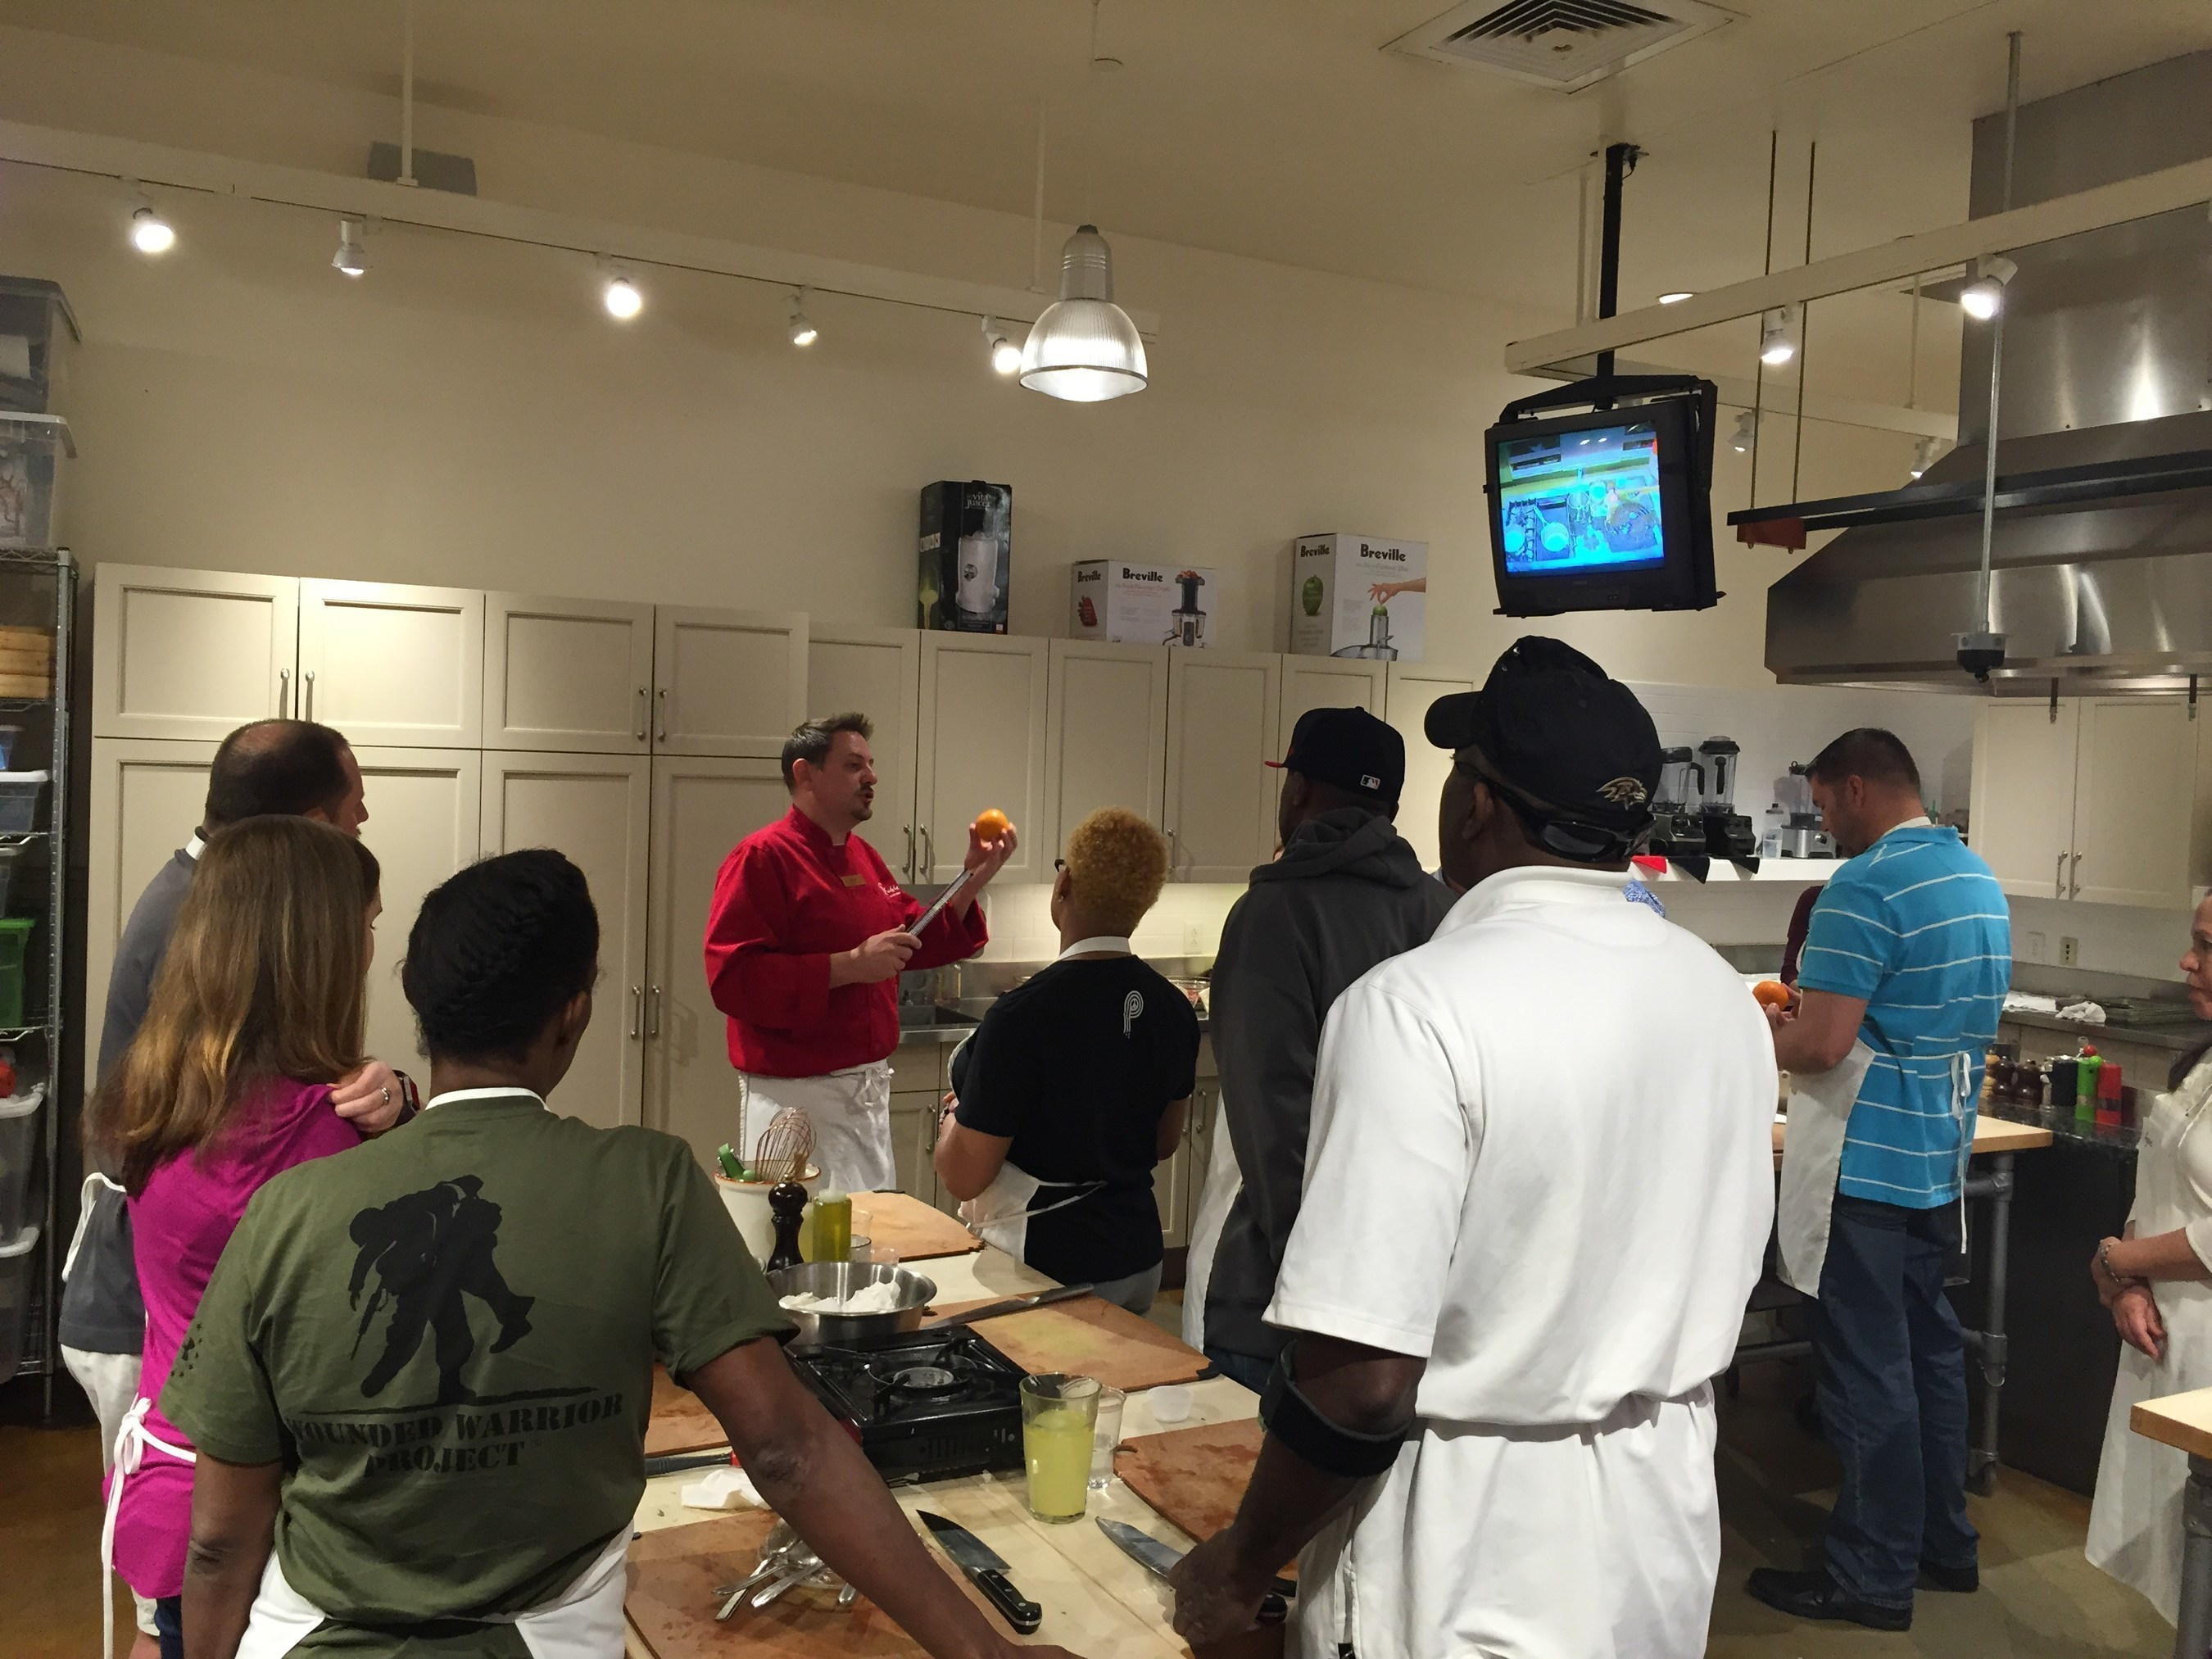 Wounded veterans and their guests learn Greek culinary skills.